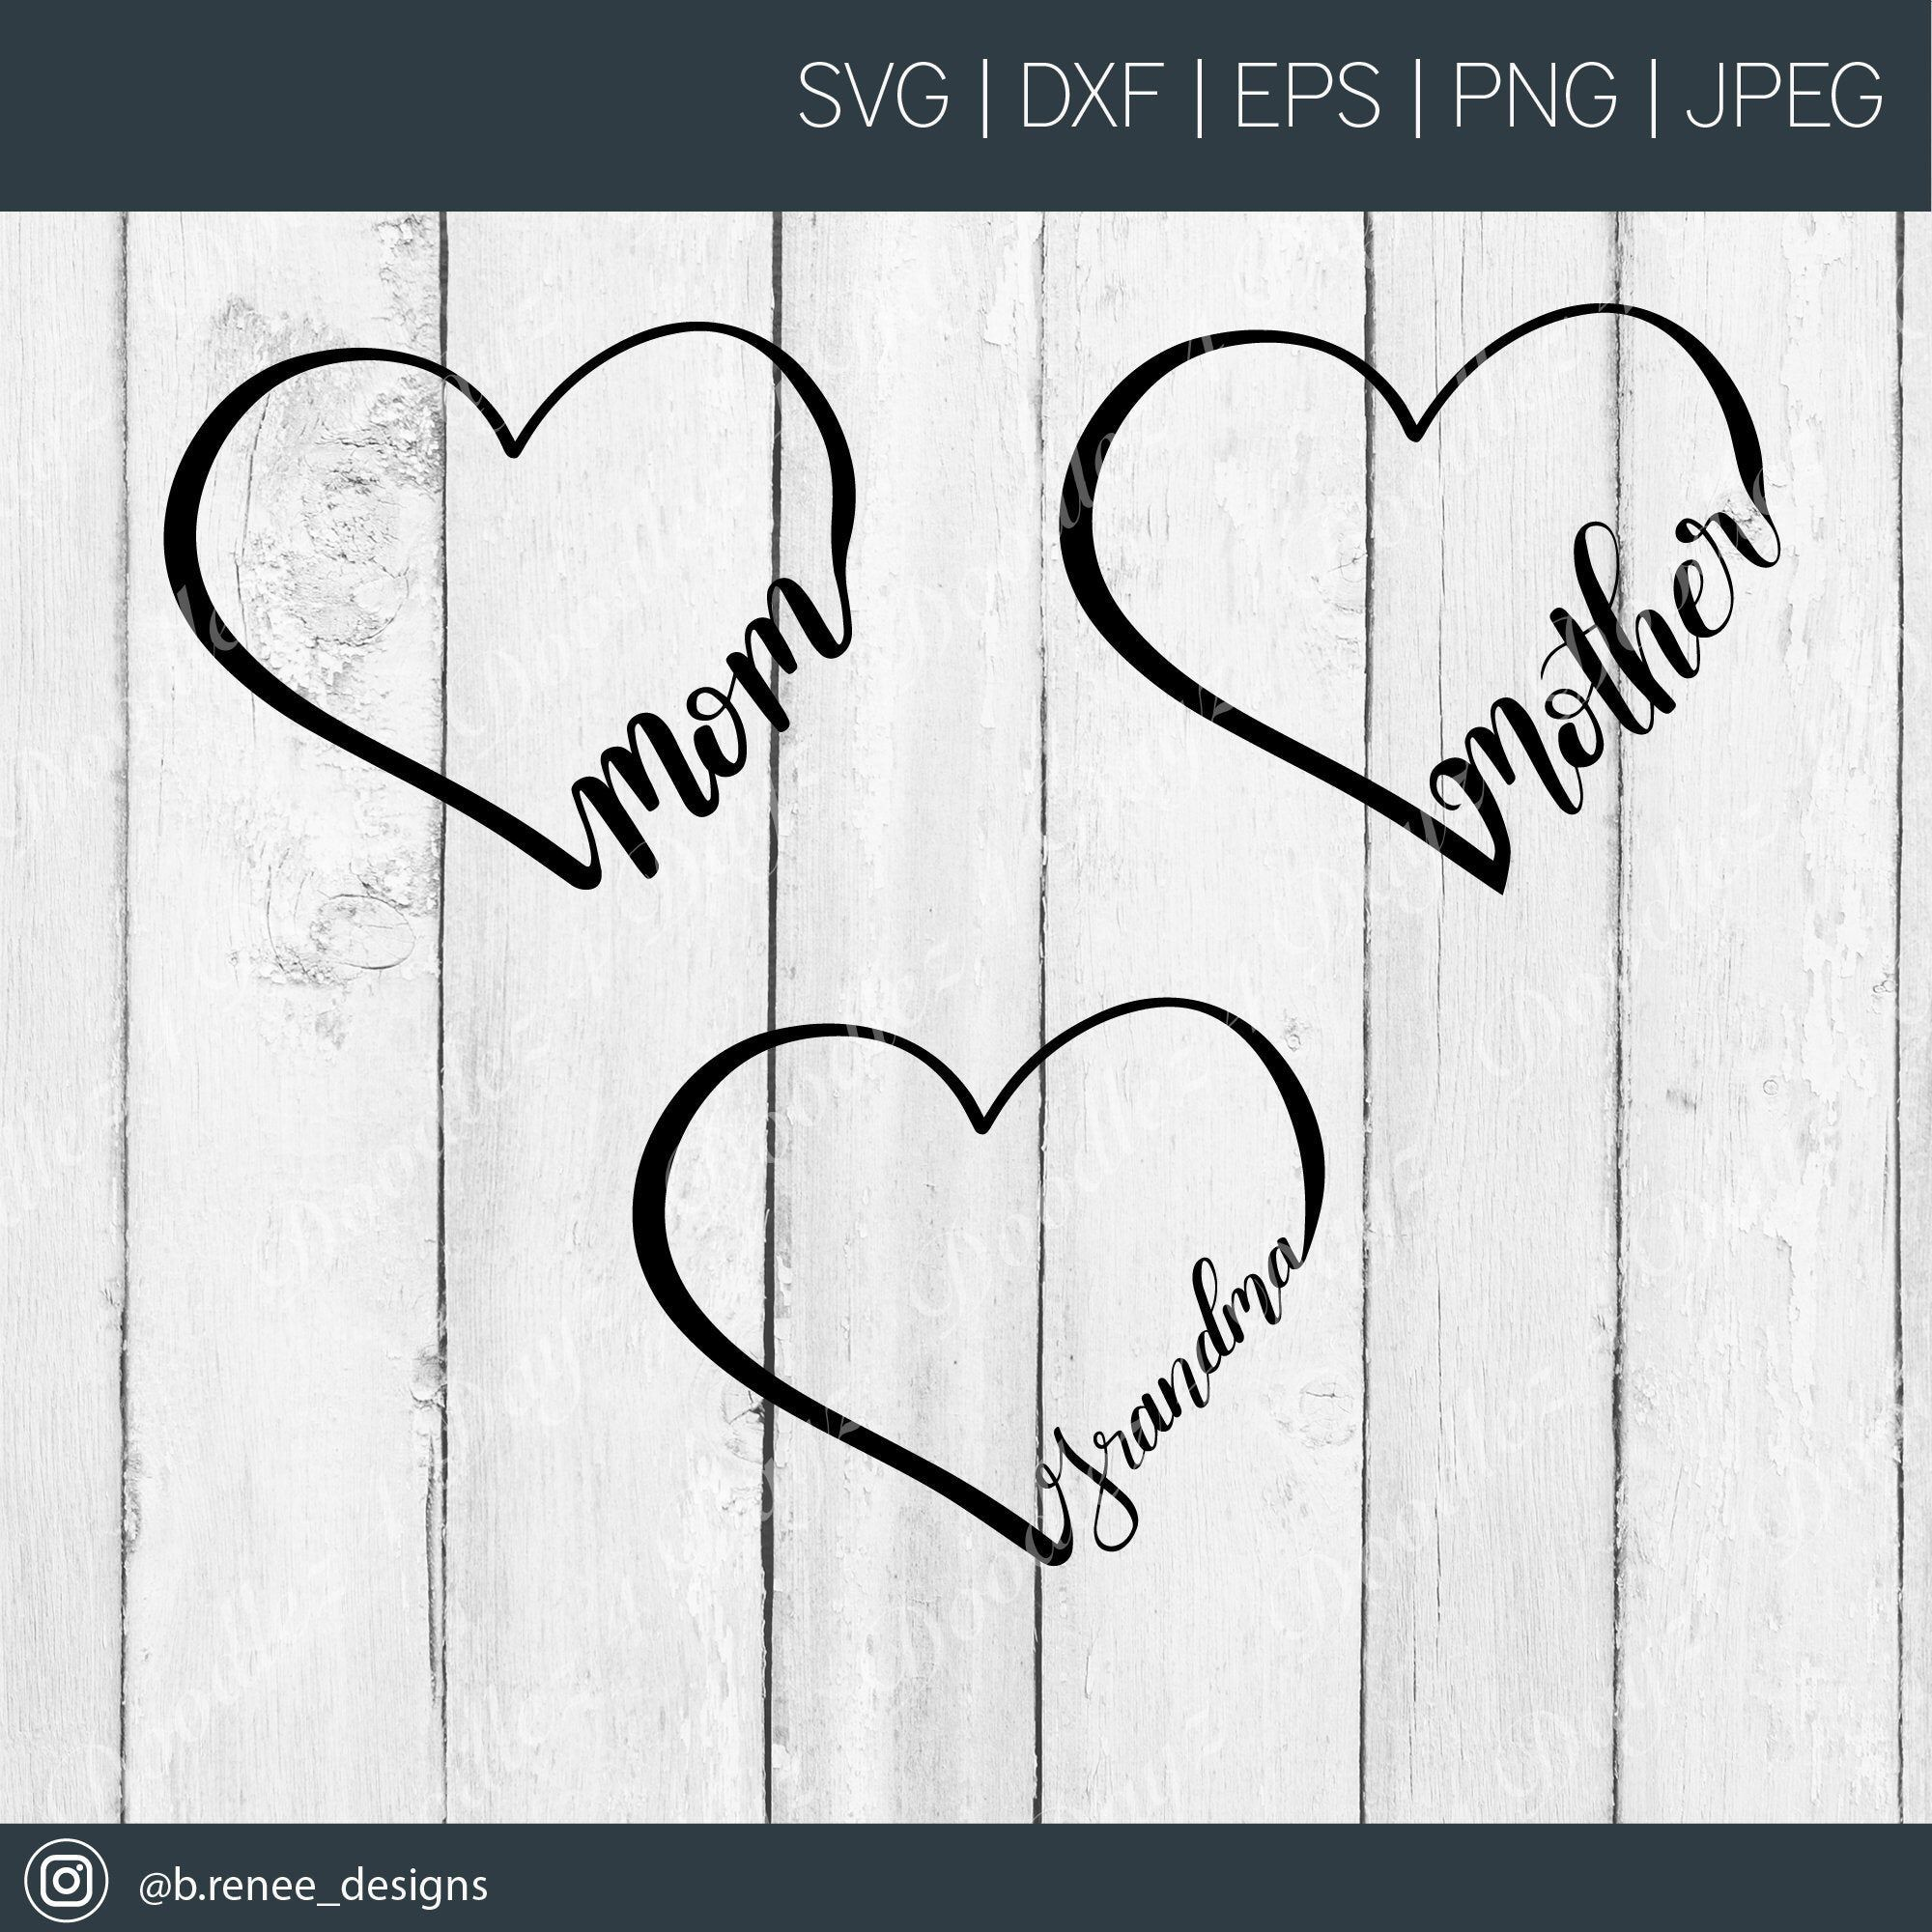 Graphic Overlay Hand Lettered Clipart Heart SVG Cricut Download Silhouette SVG Be Still My Heart SVG Cut File Be Still Cutting File